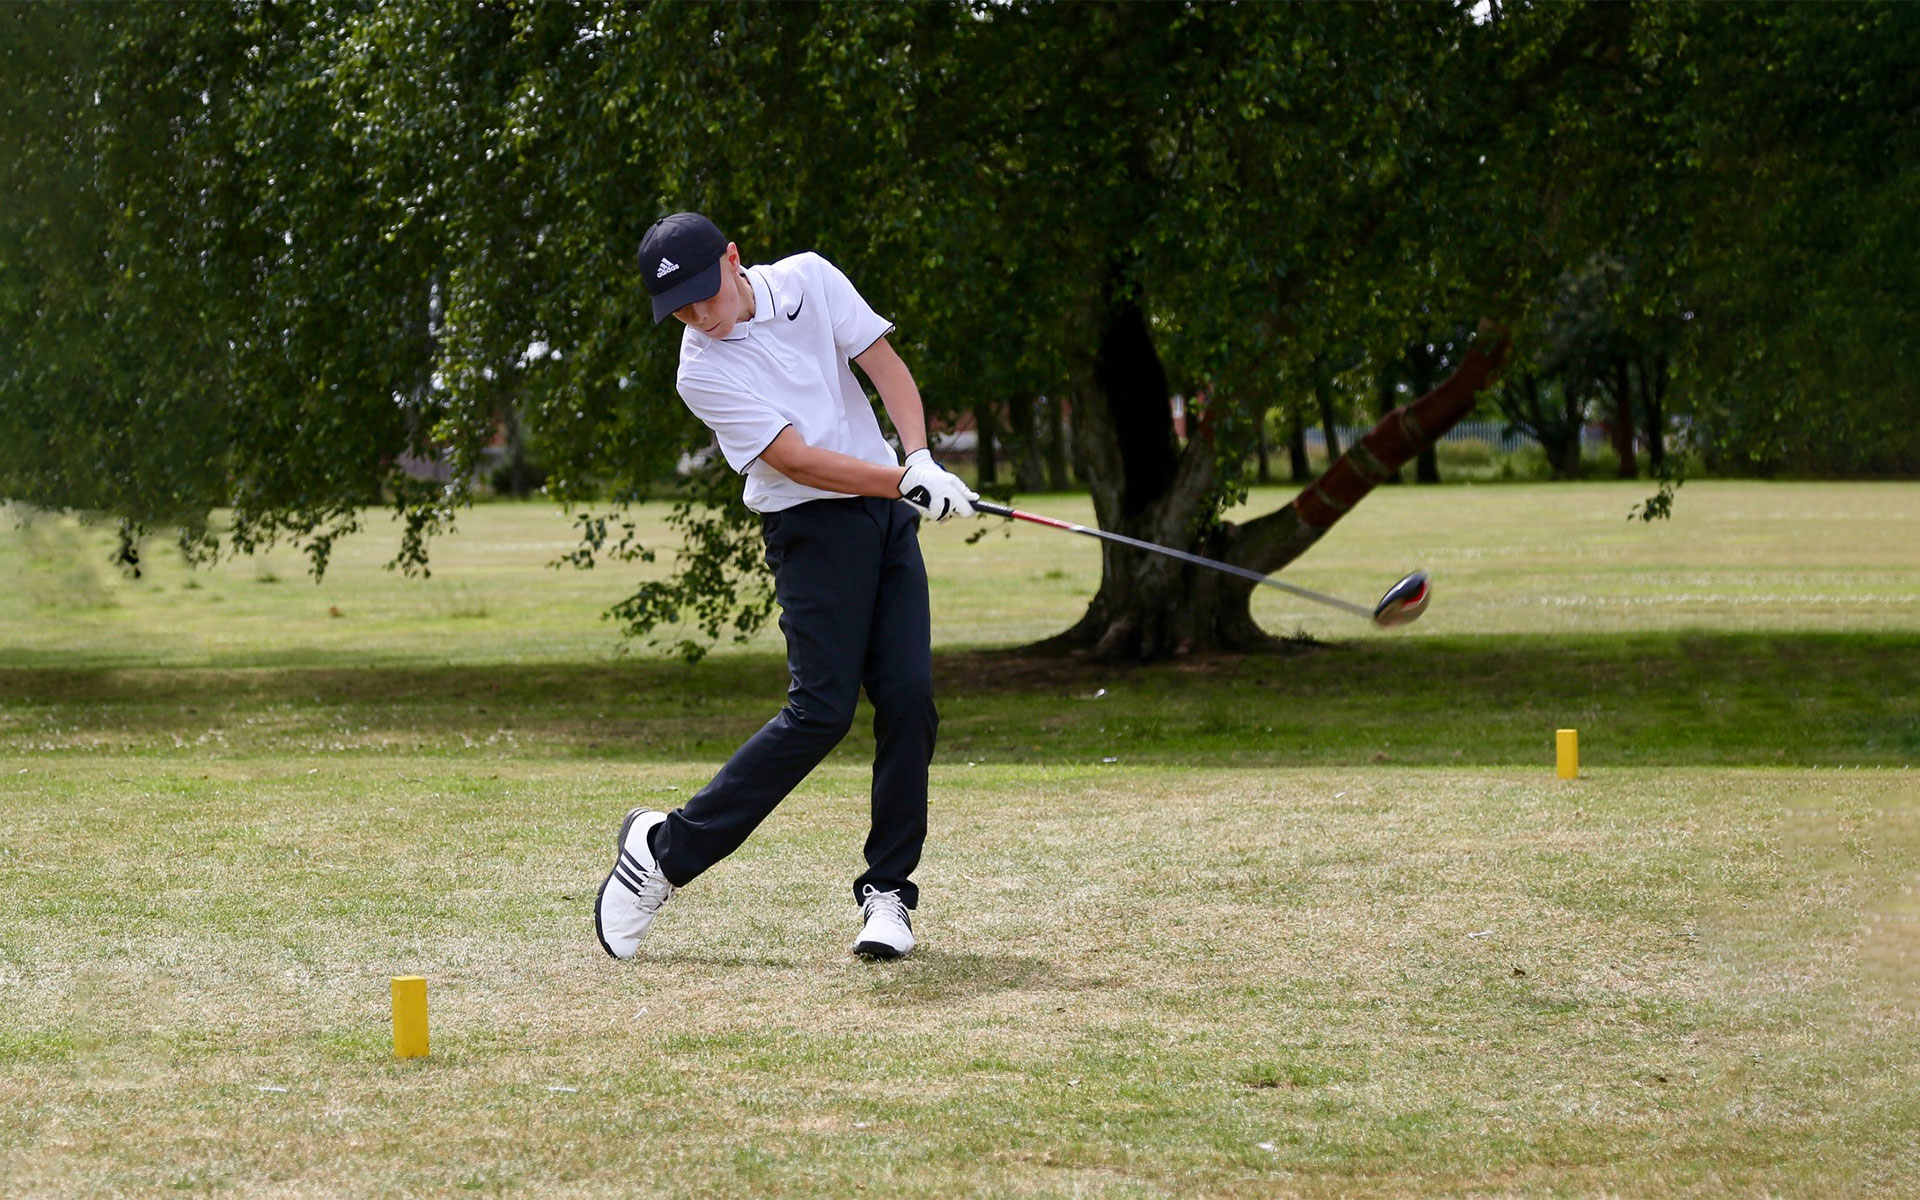 Charity Golf Competitions